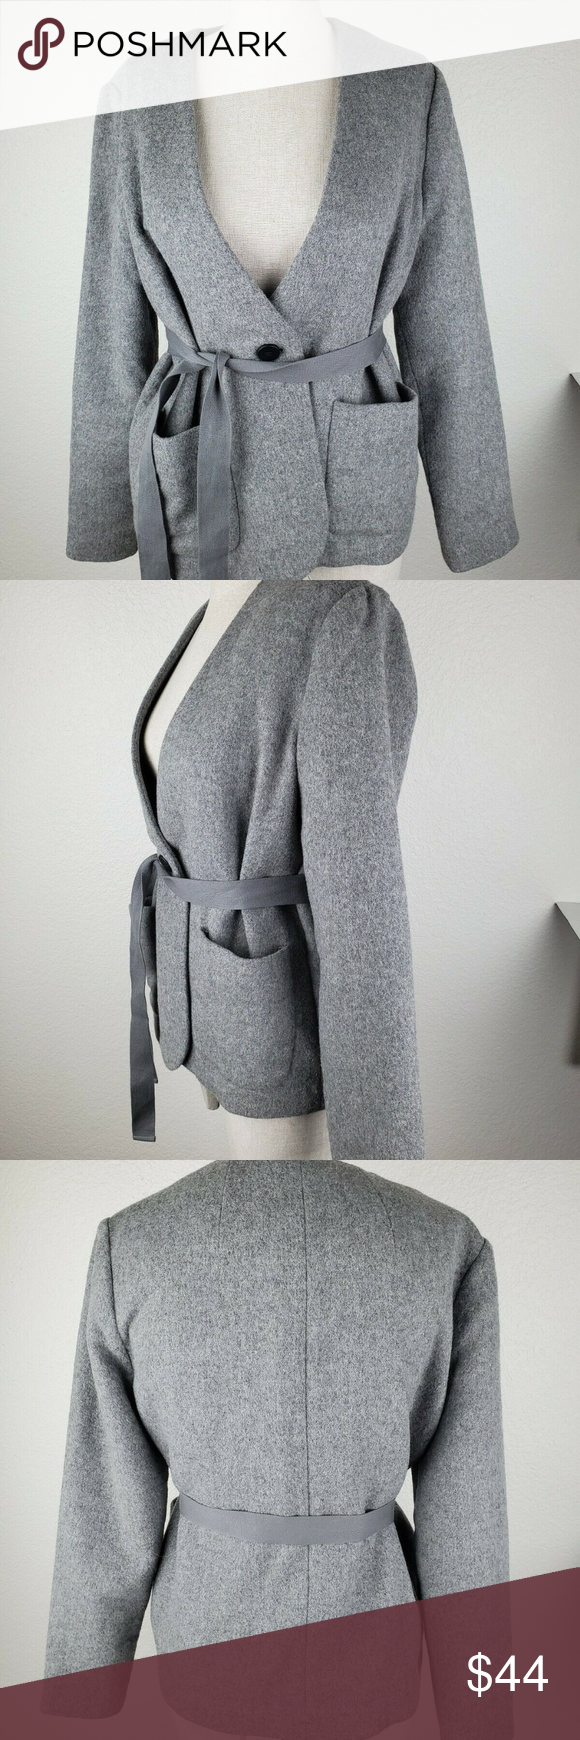 Madewell Carrington Blazer Gray top Size S G0161 For your consideration is a Women's wool blend blazer jacket  Brand: Madewell  Condition: New without tags  Style: Wool blend jacket  Color: Grey  Size: Small            Pit to Pit:  19